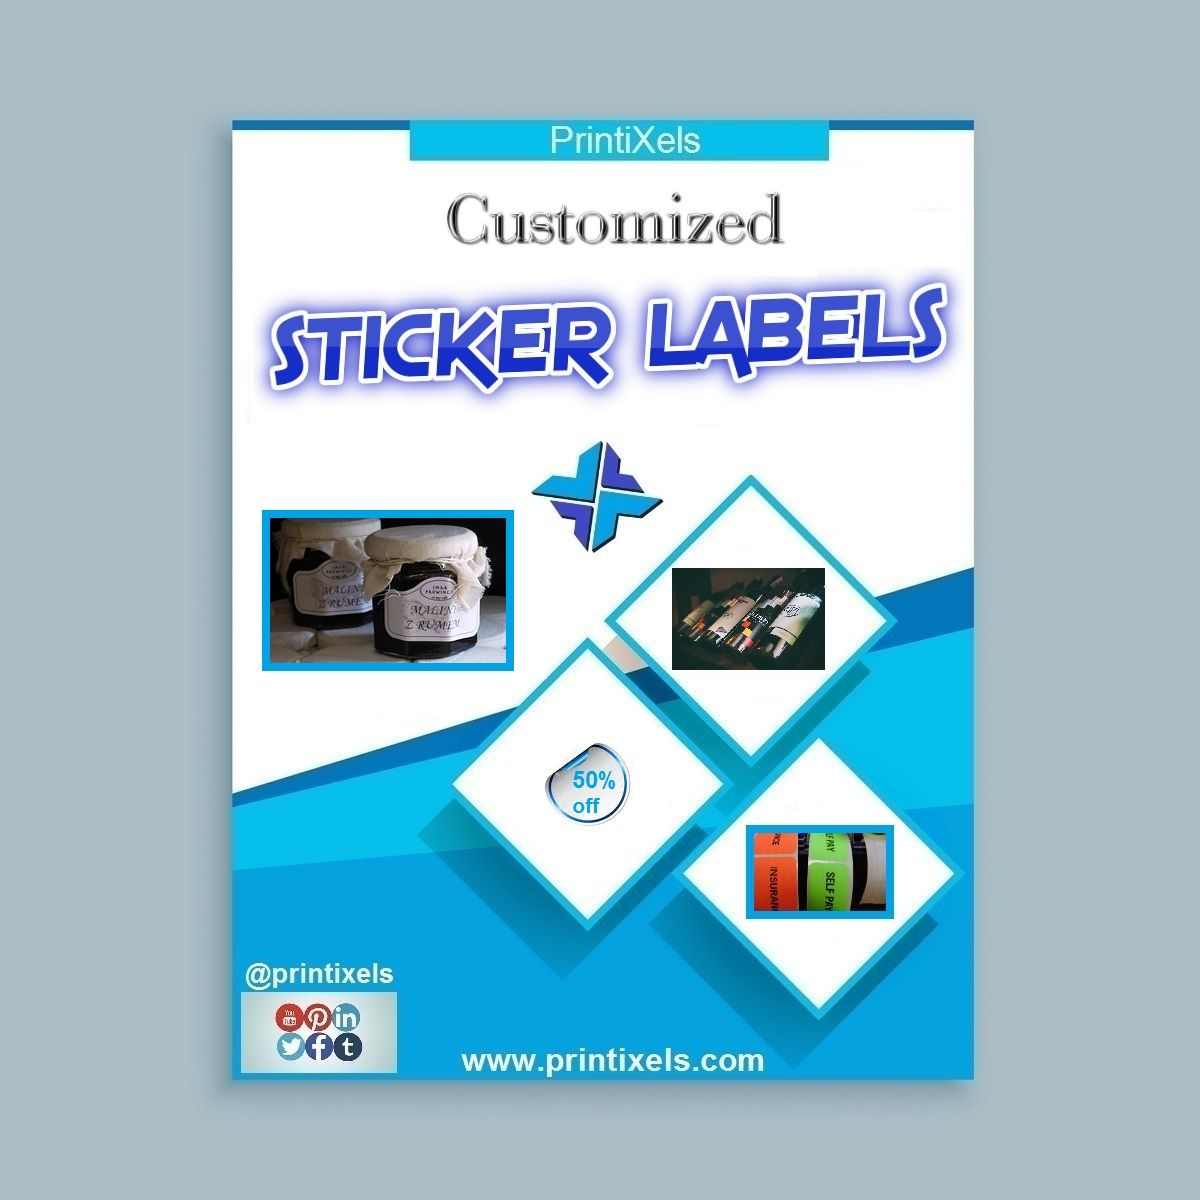 Car sticker maker in the philippines - Sticker Label Printing Services